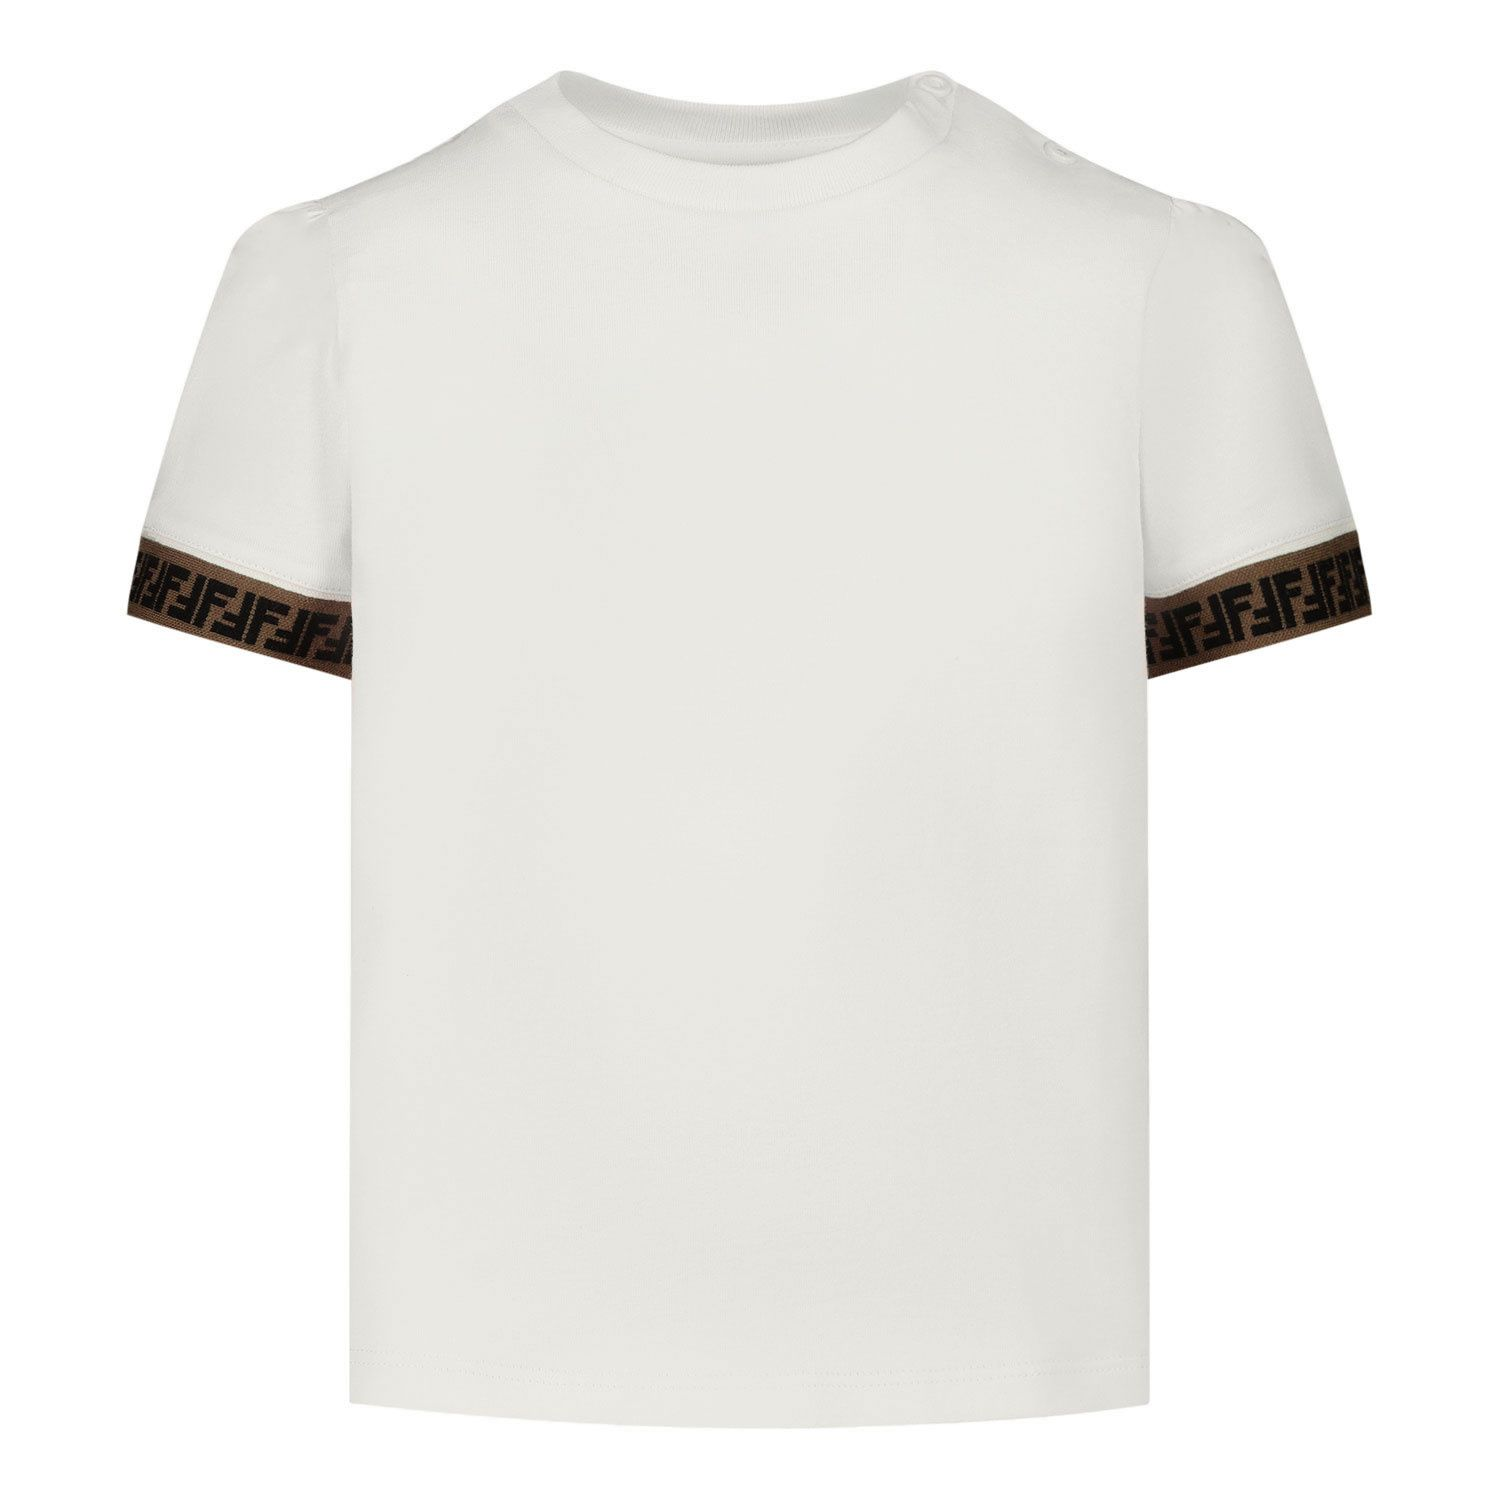 Picture of Fendi BMI216 baby shirt off white